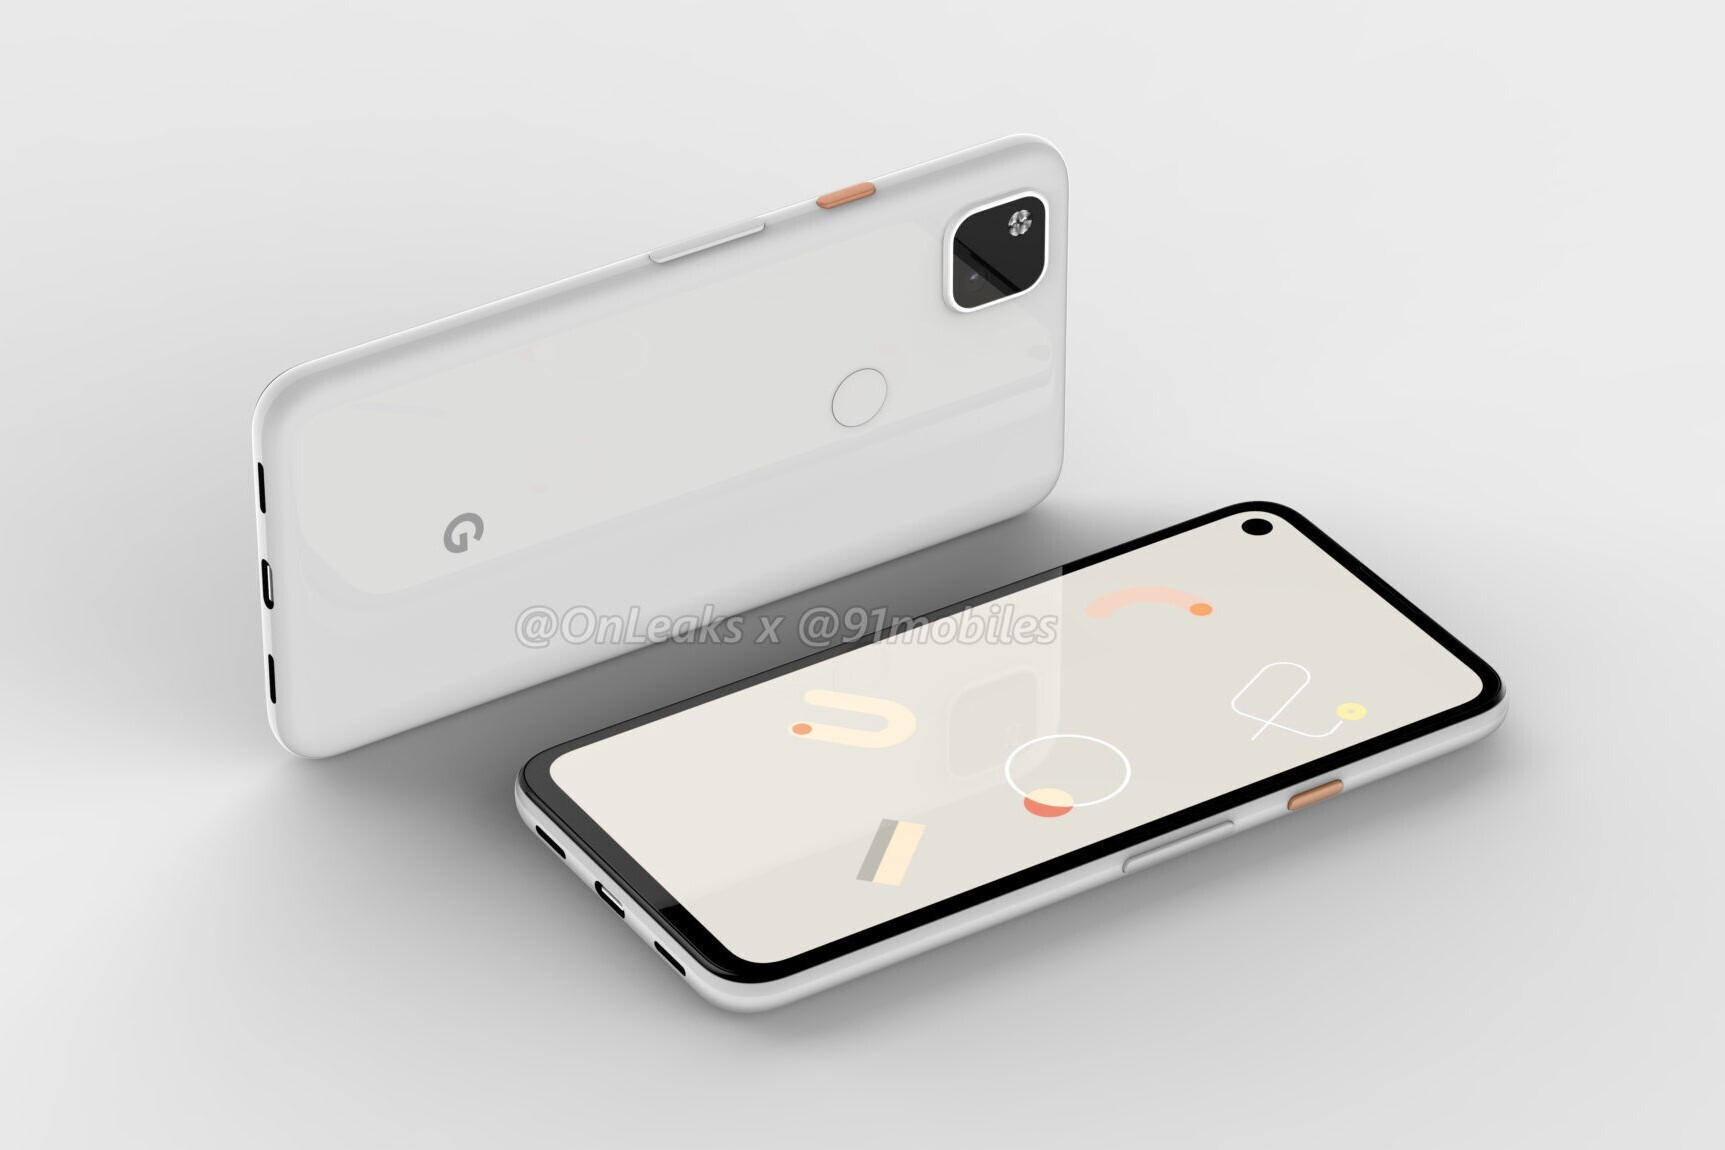 Google Pixel 4a rumored to go on sale in July 13th